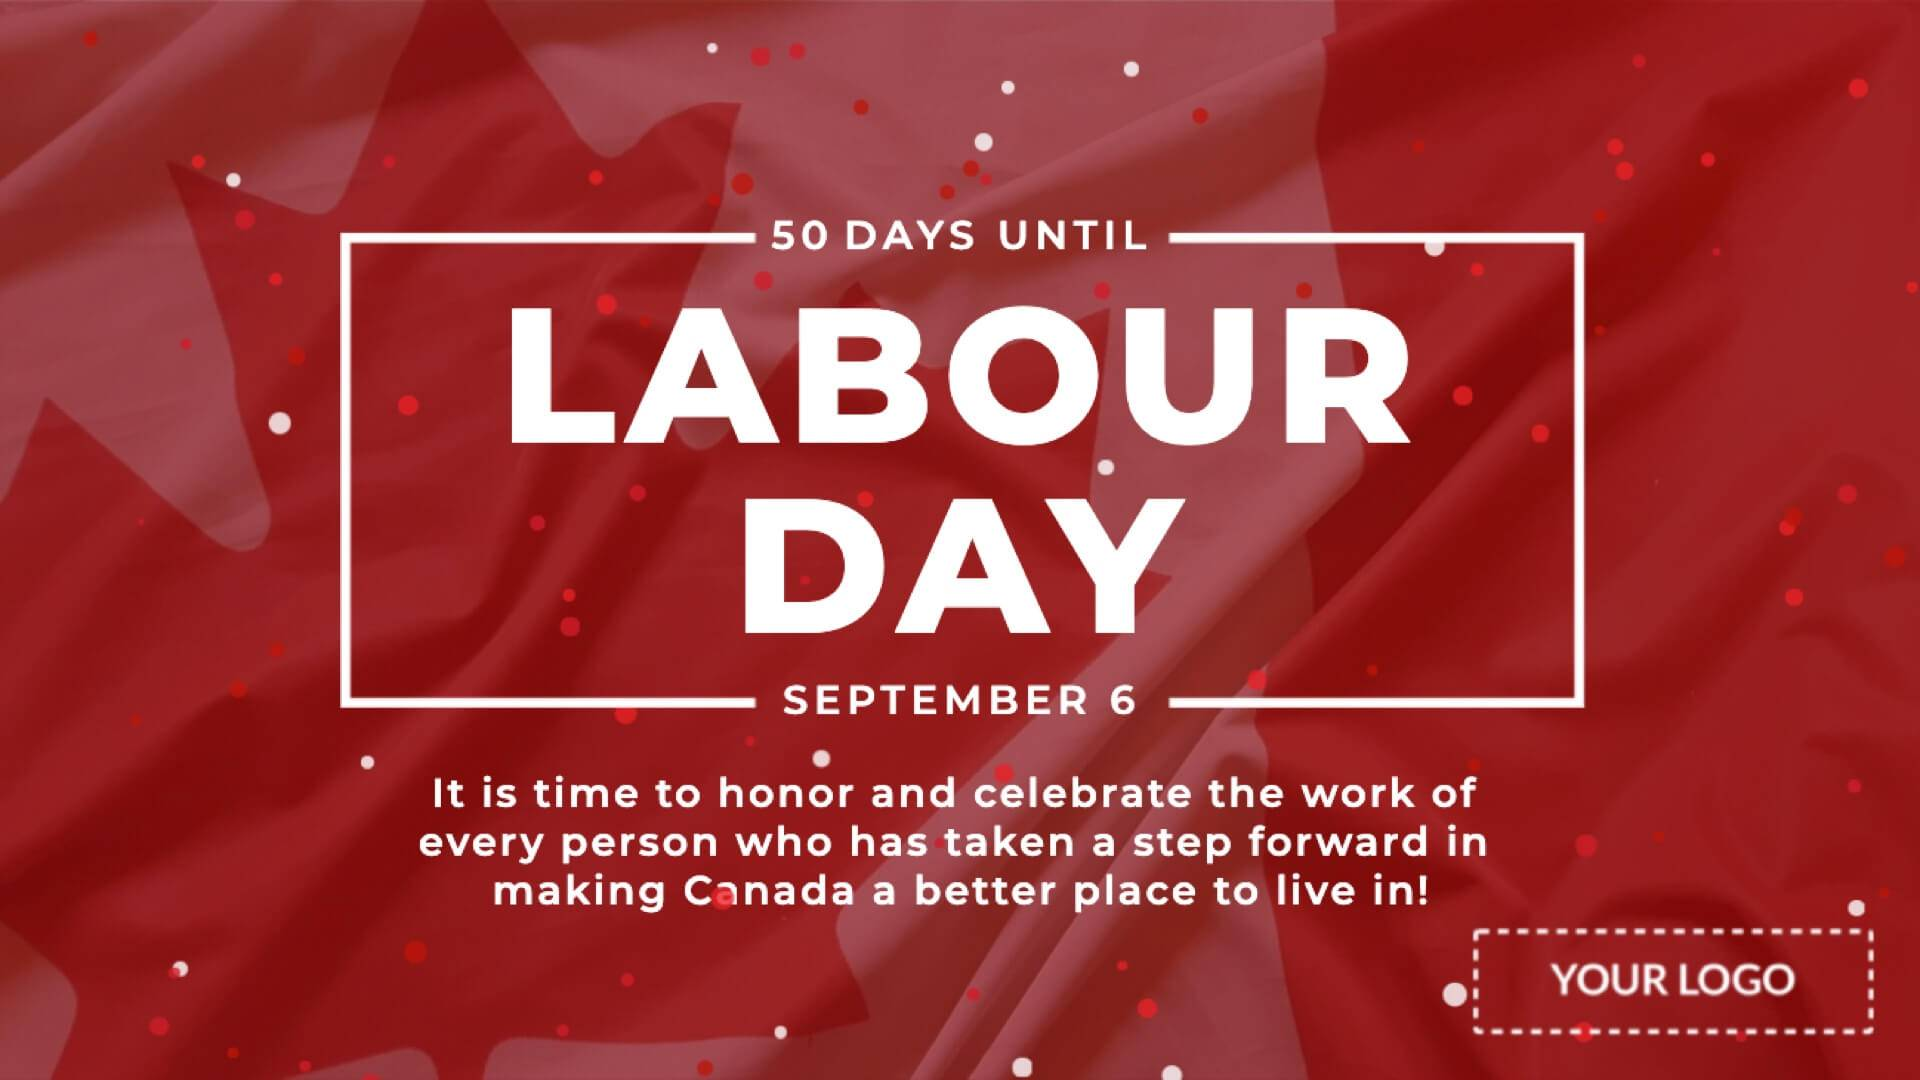 Canadian Labour Day Digital Signage Template